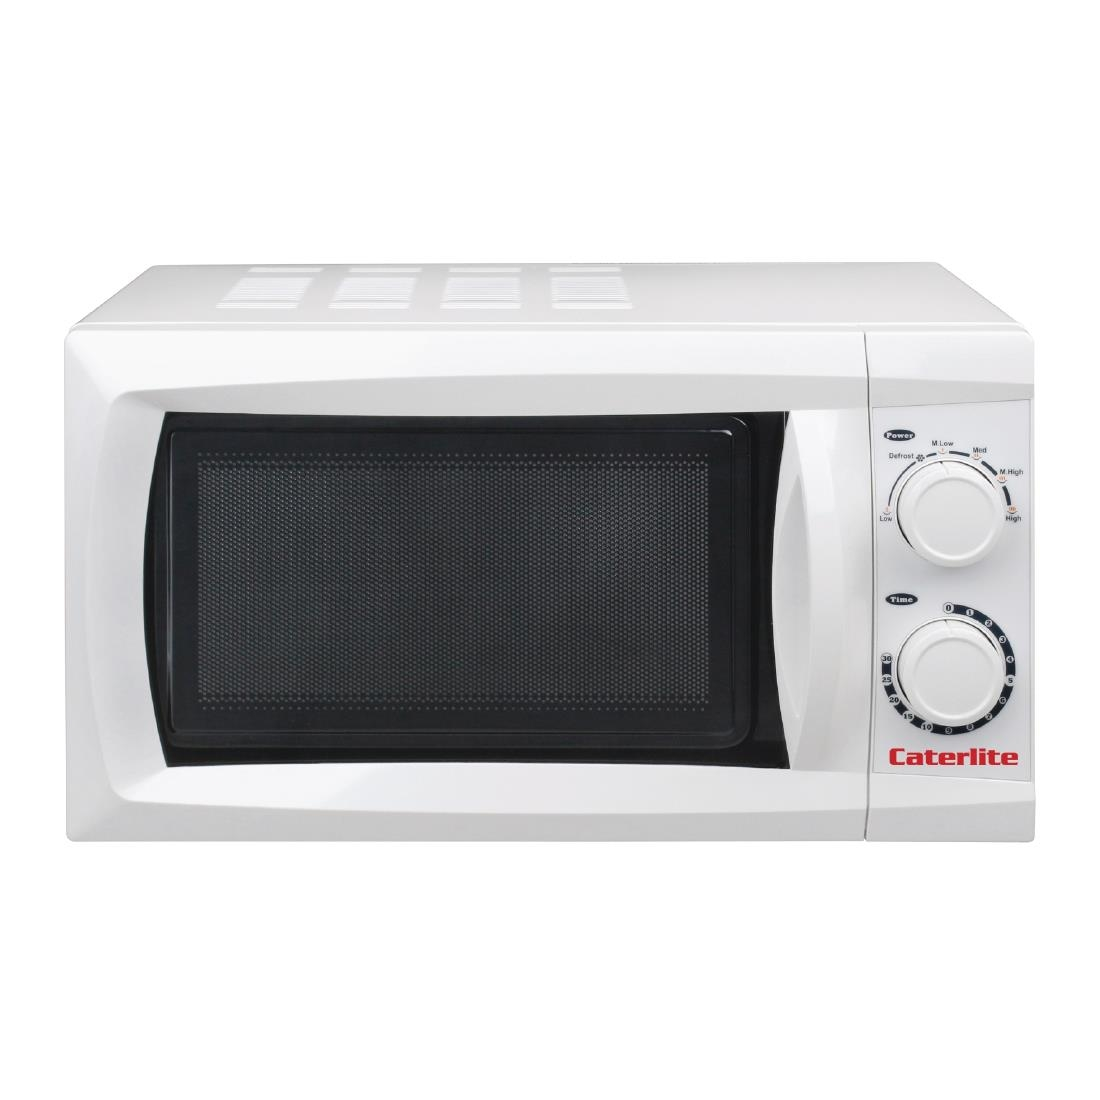 Powerful Microwave Oven: Caterlite Compact Microwave Oven Manual Power Output